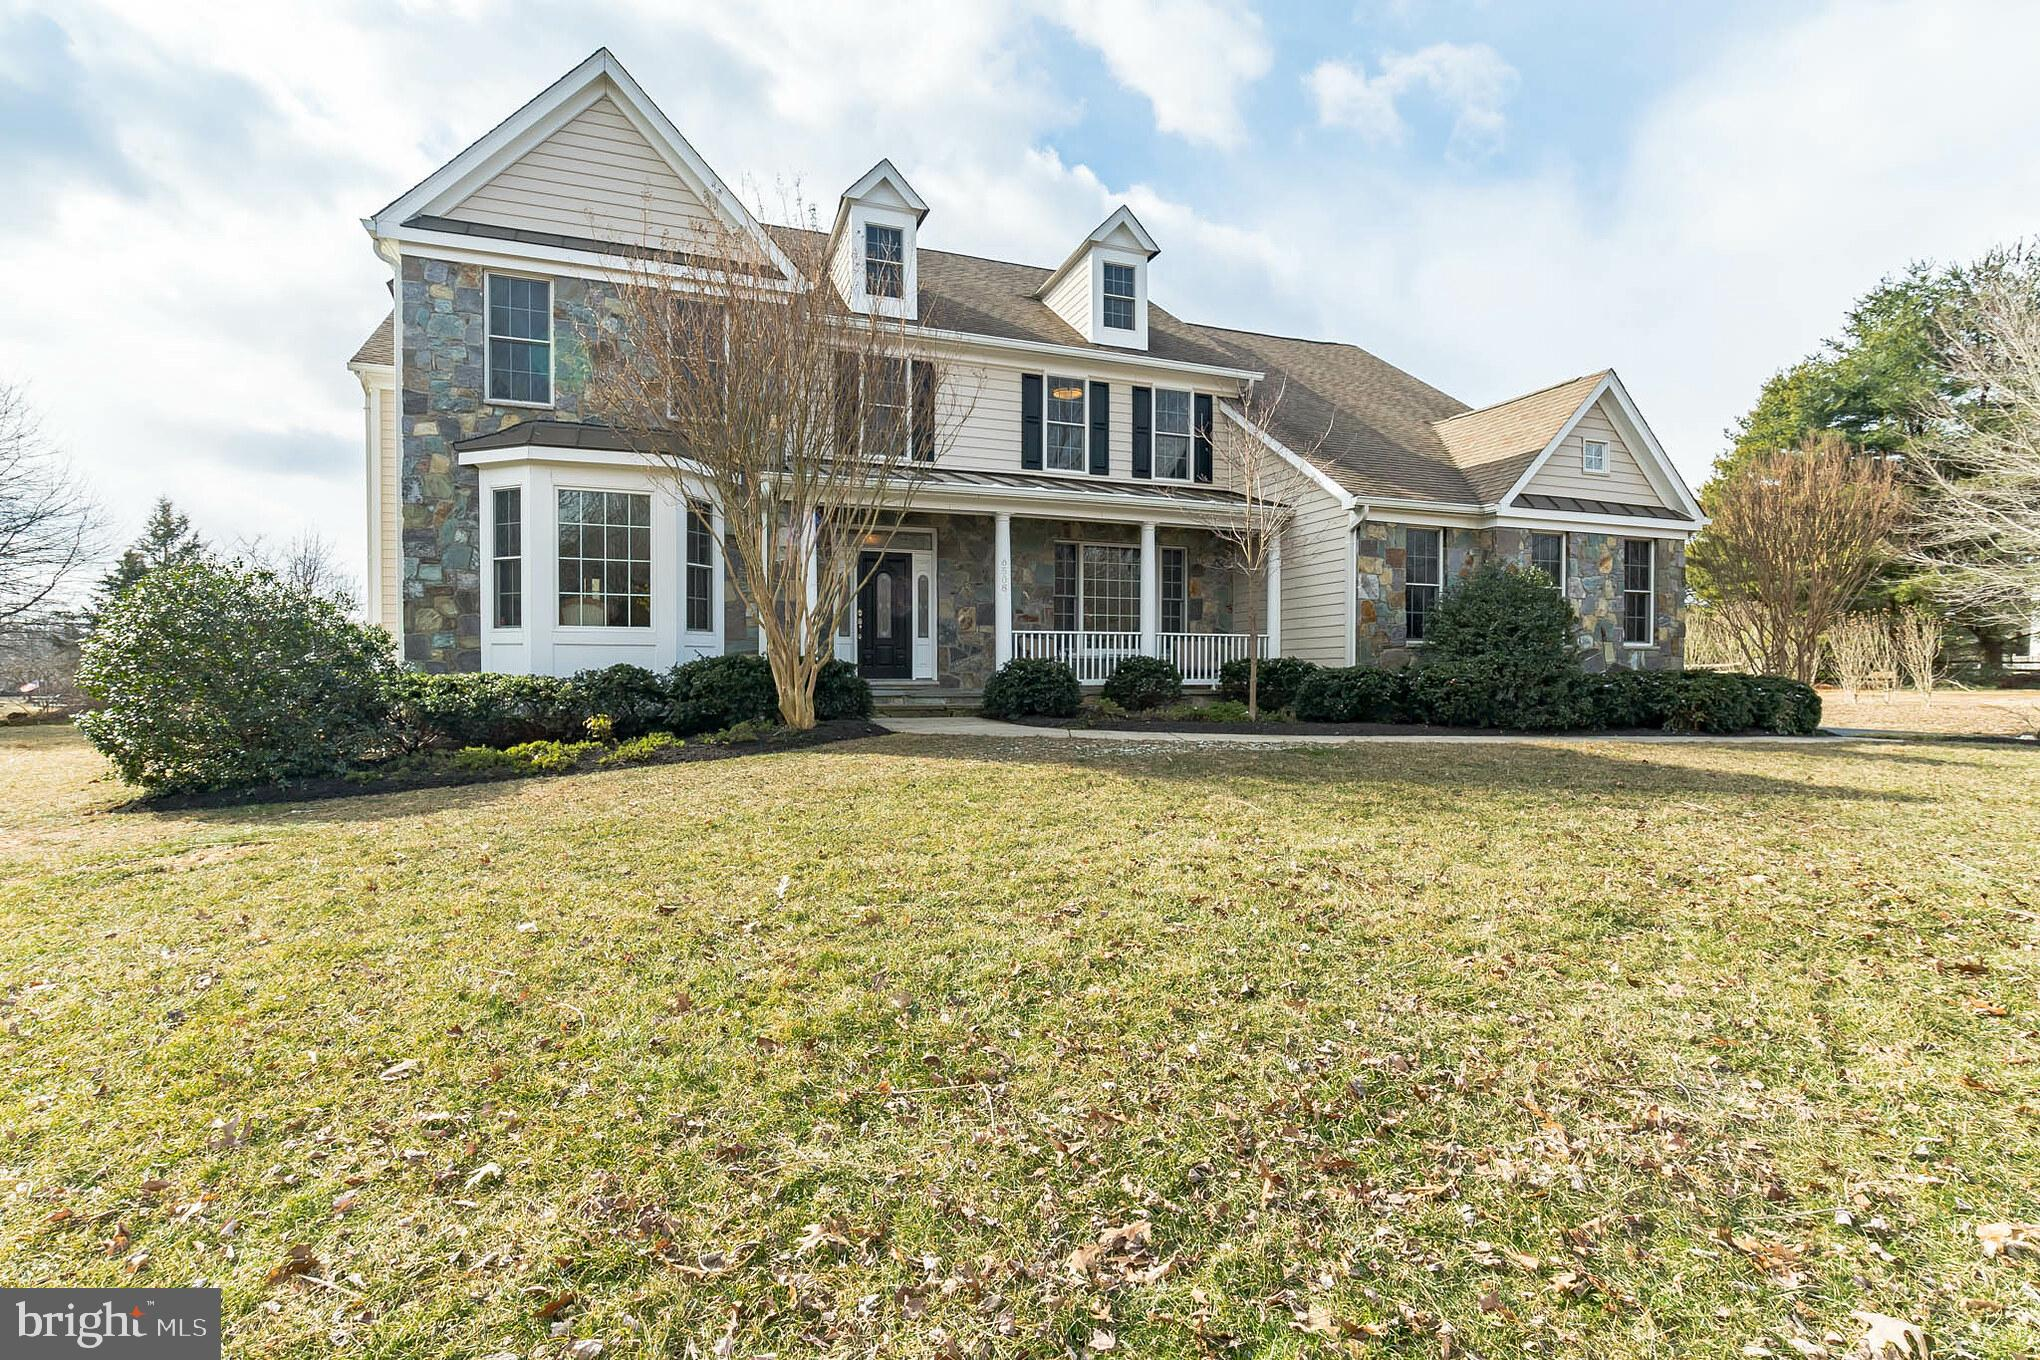 6508 GRIFFITH ROAD, GAITHERSBURG, MD 20882